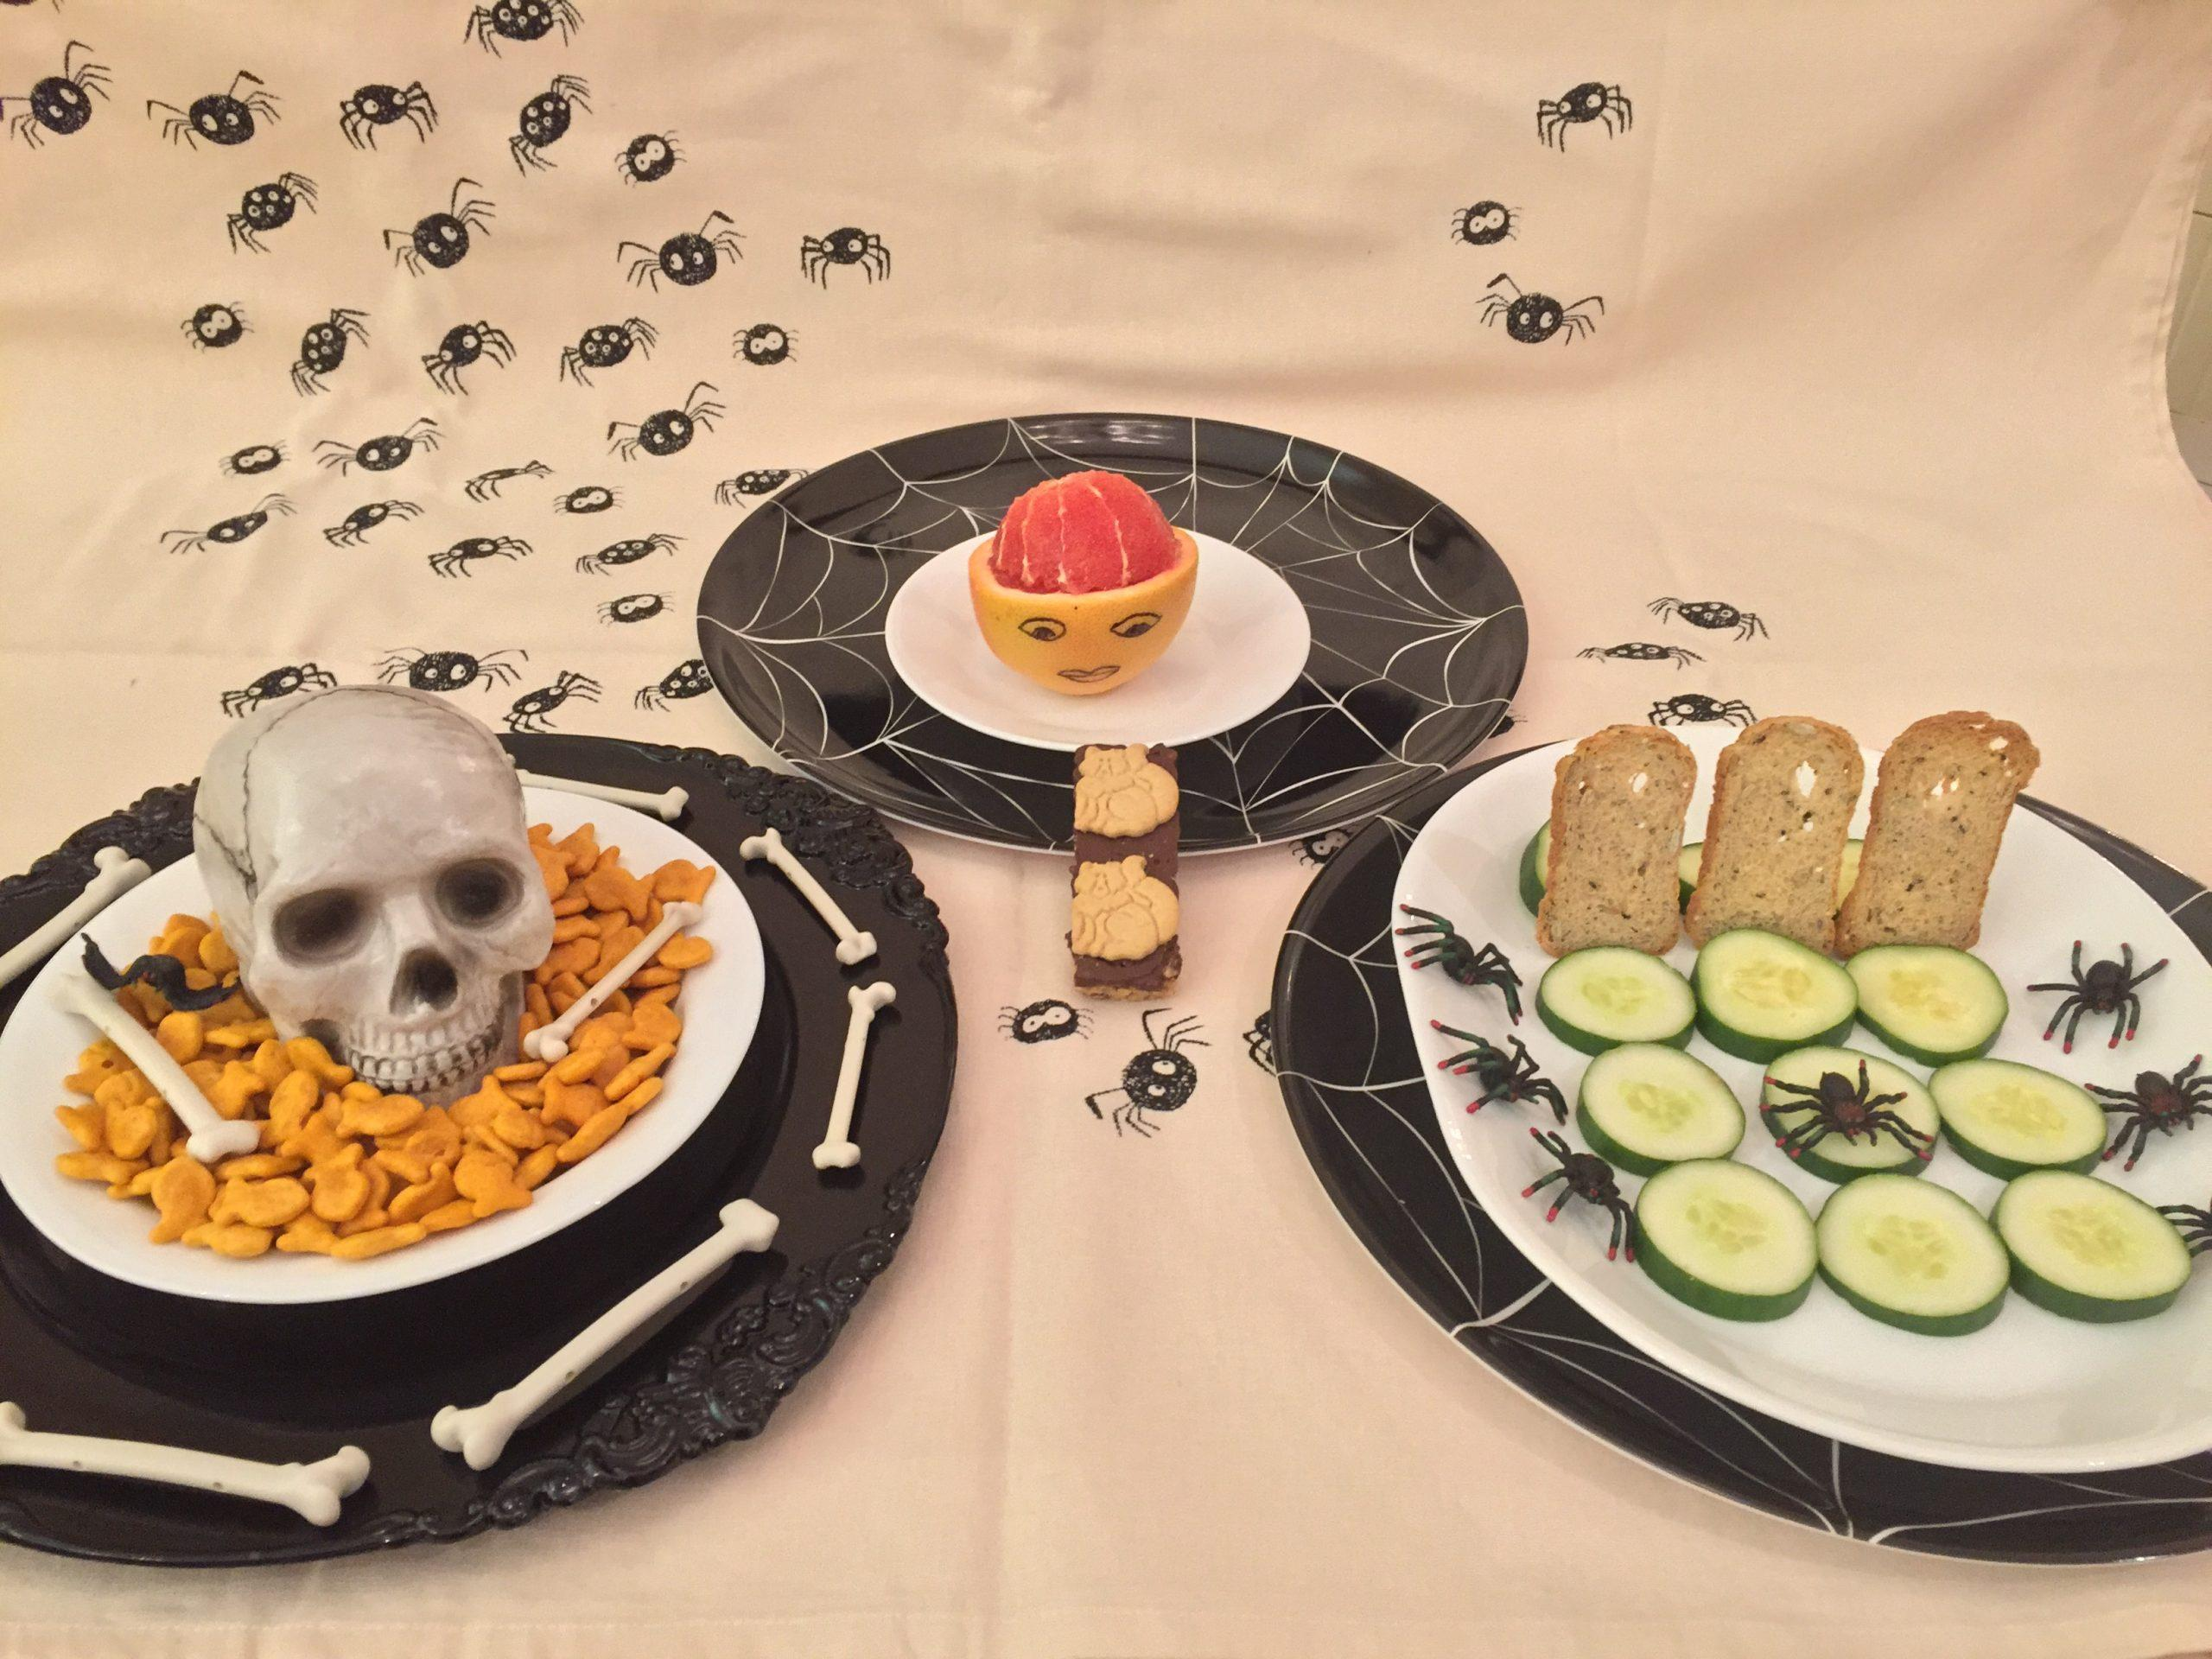 Skip the sweets this Halloween and try these healthy Halloween snacks! These spooky snacks are delicious have zero added sugar.